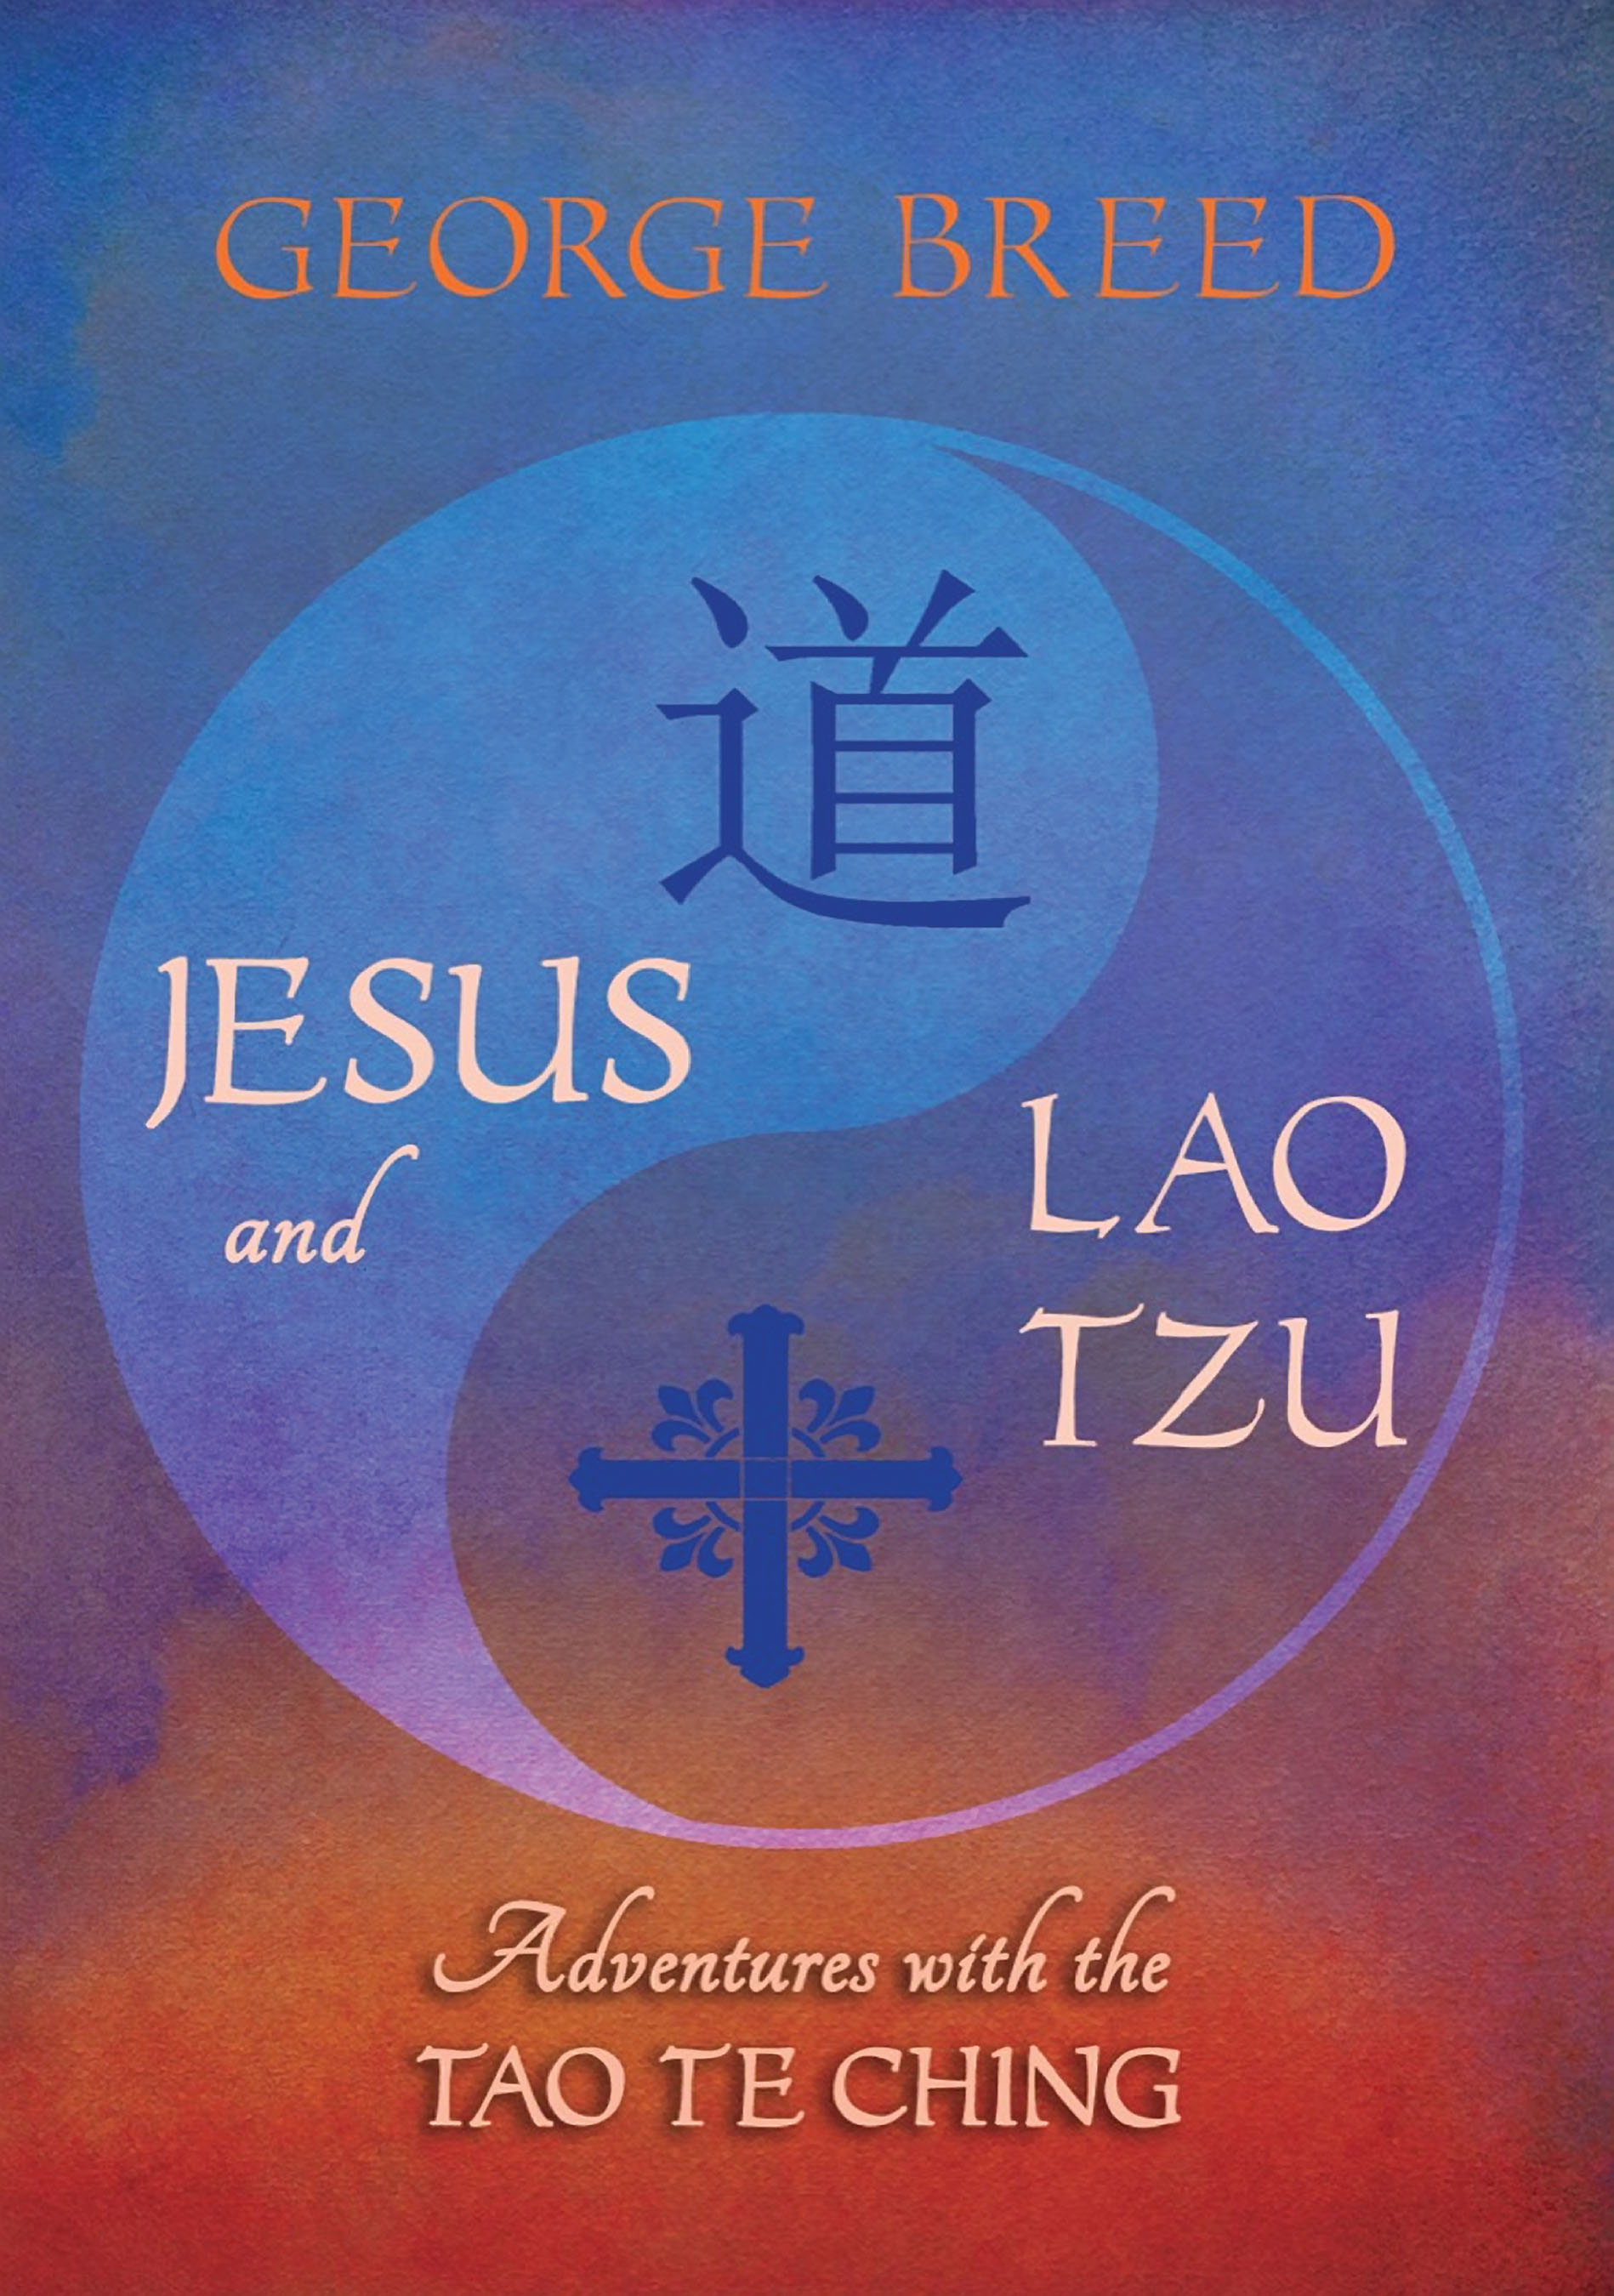 George Breed is the author of Jesus and Lao Tzu: Adventures with the Tao Te Ching, available through Amazon.